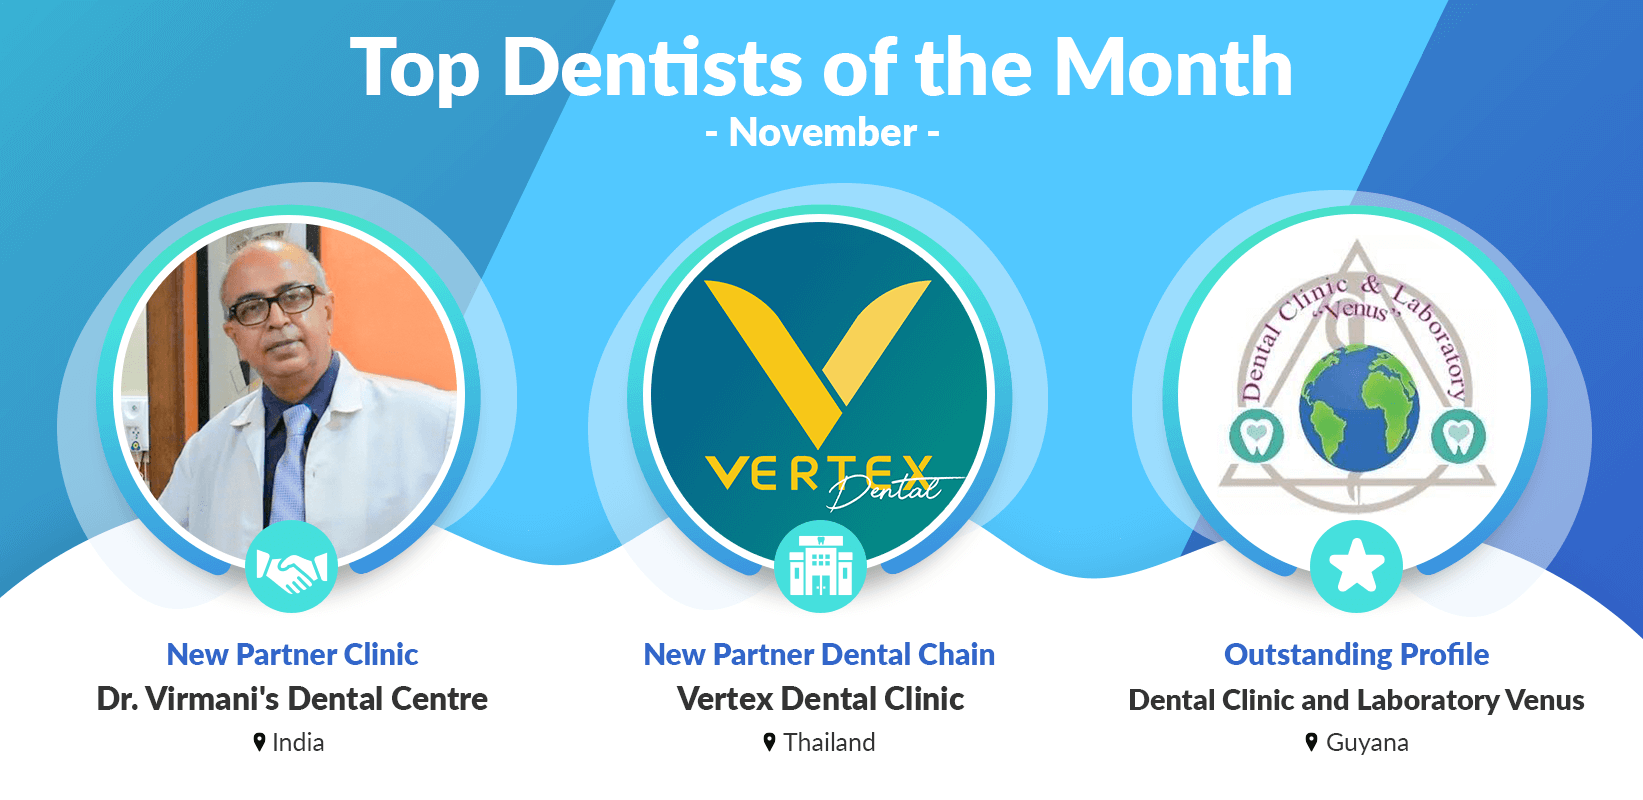 Top Dentist of the Month November 2020